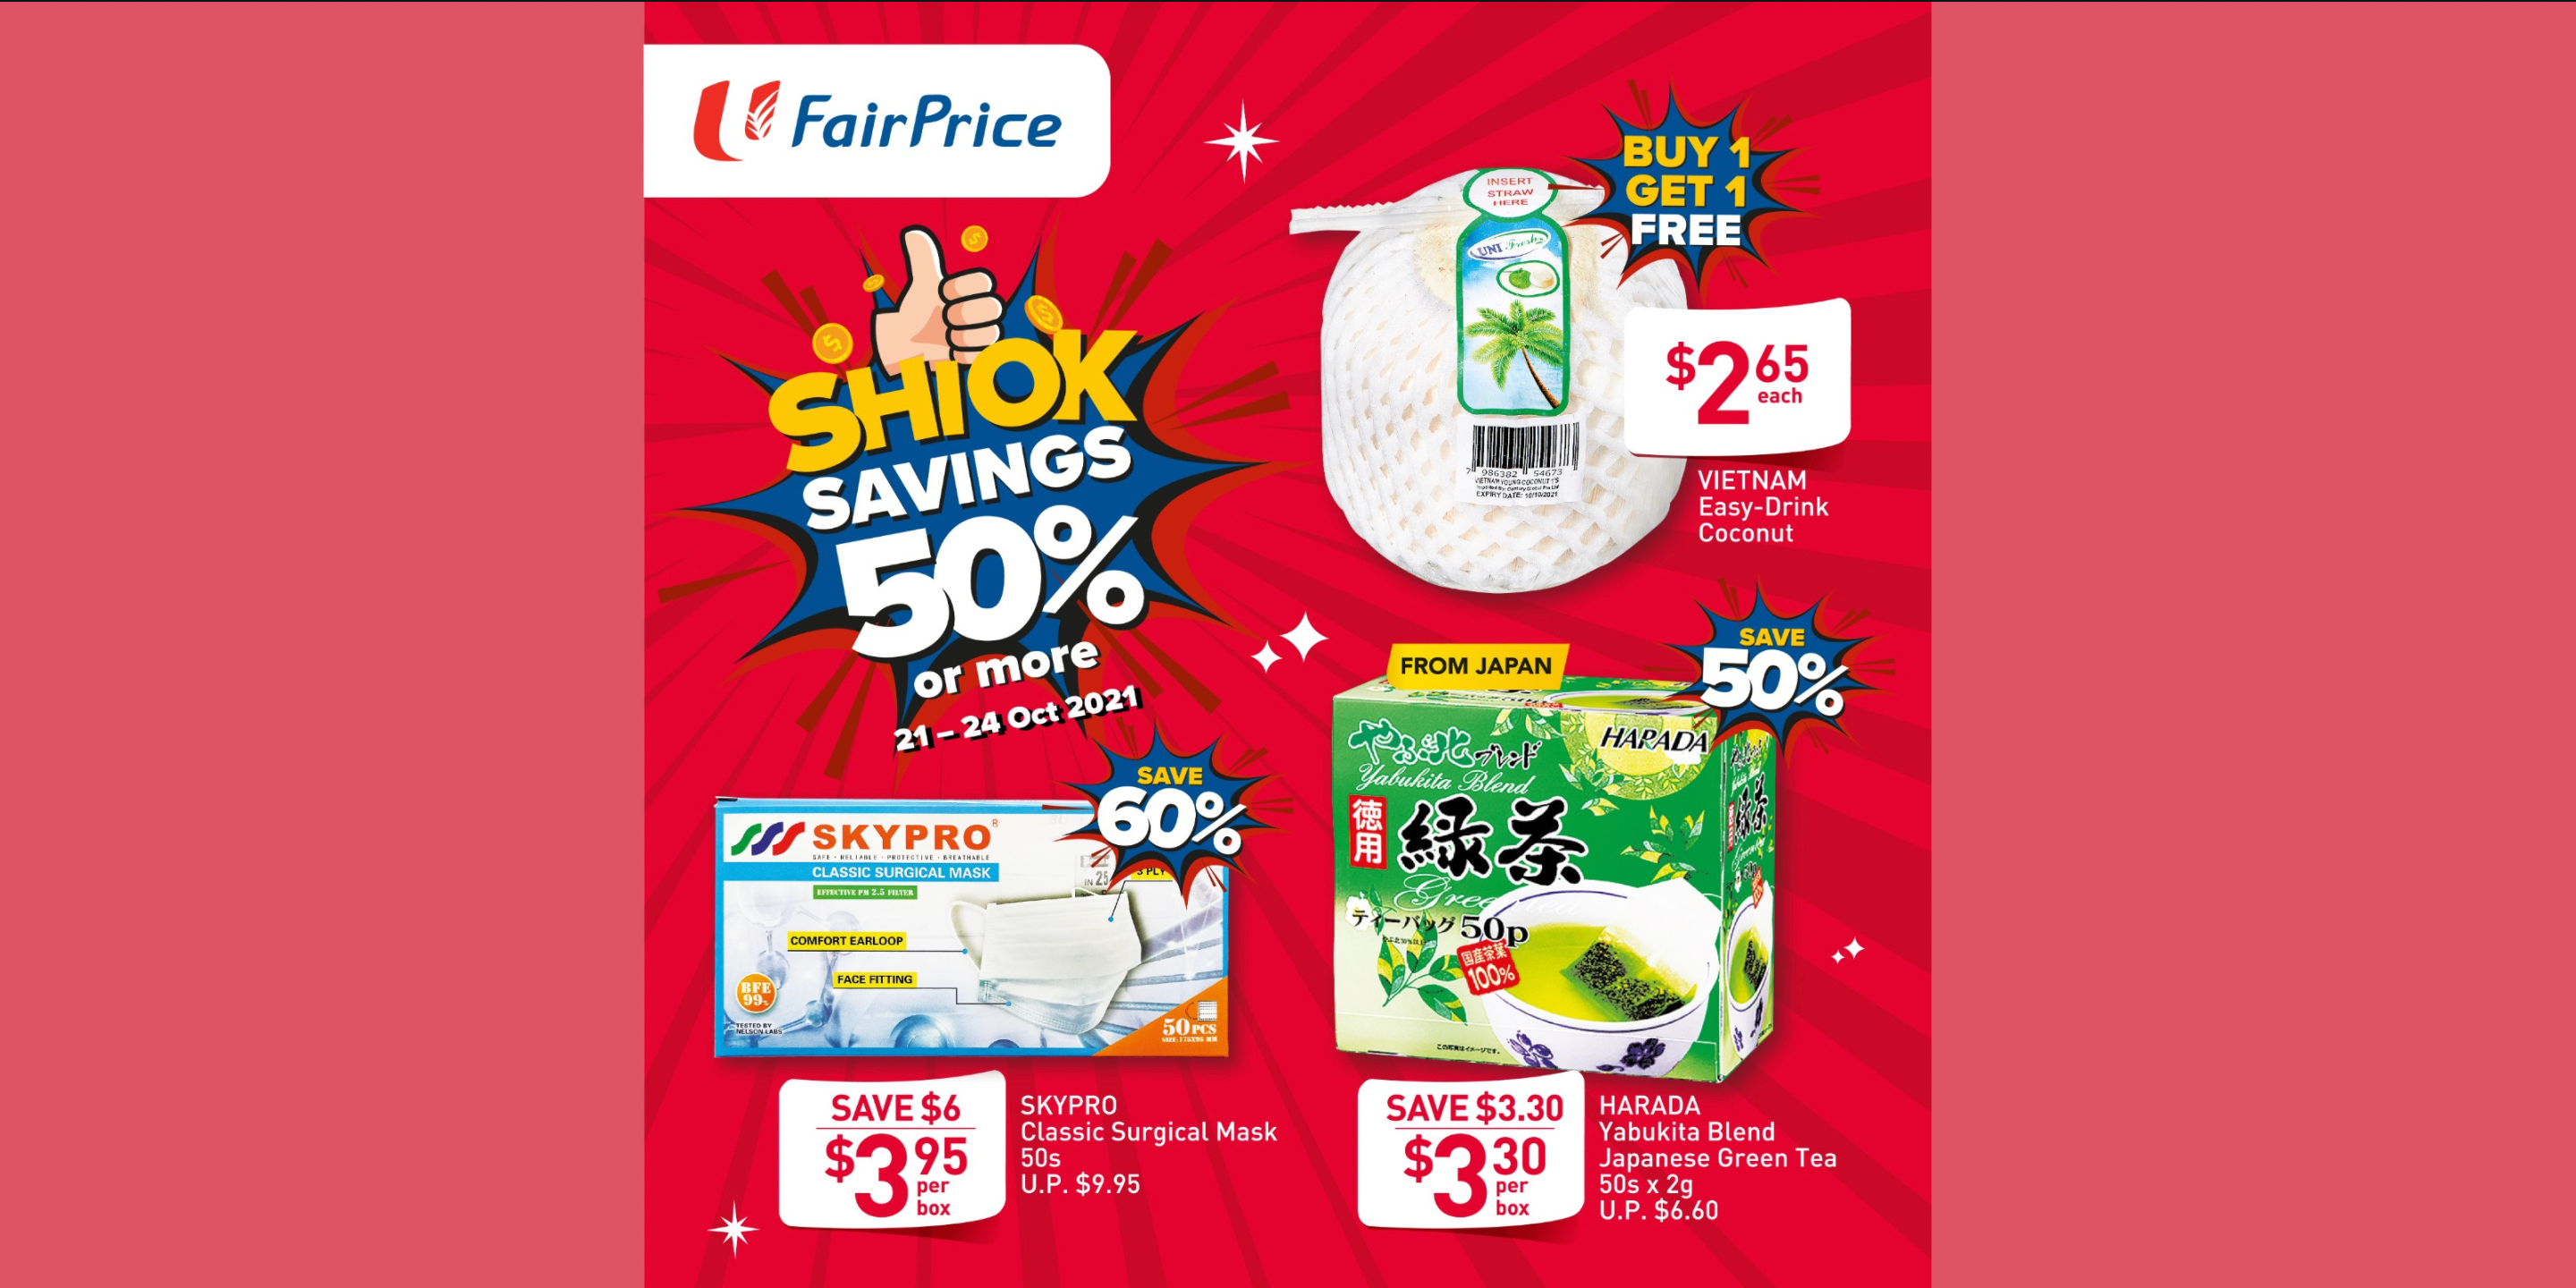 💥 4 Days only – ENJOY SHIOK SAVINGS OF 50% OR MORE at selected FairPrice stores from now – 24 Oct!